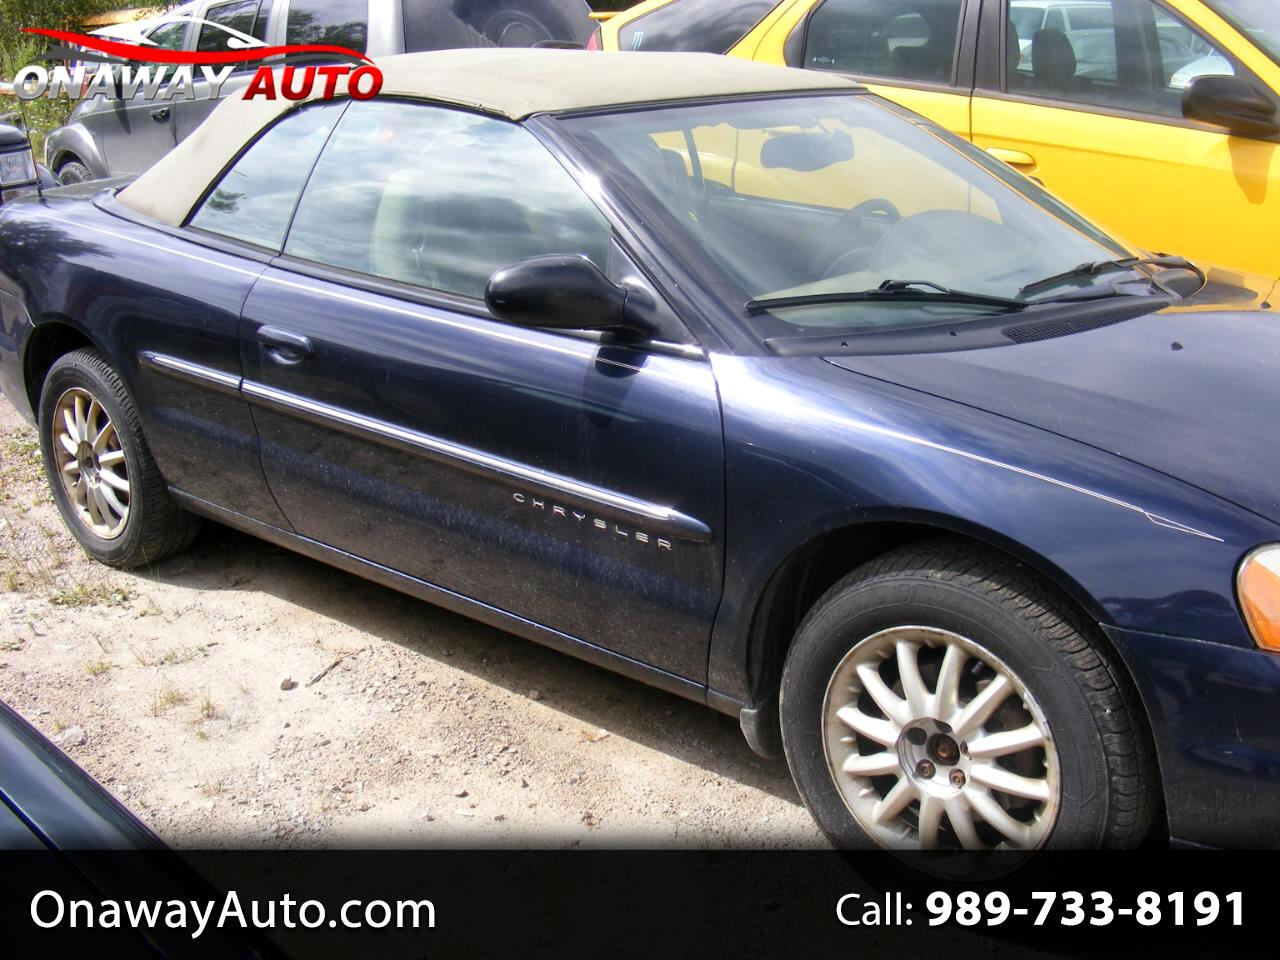 2001 Chrysler Sebring 2dr Convertible LXi